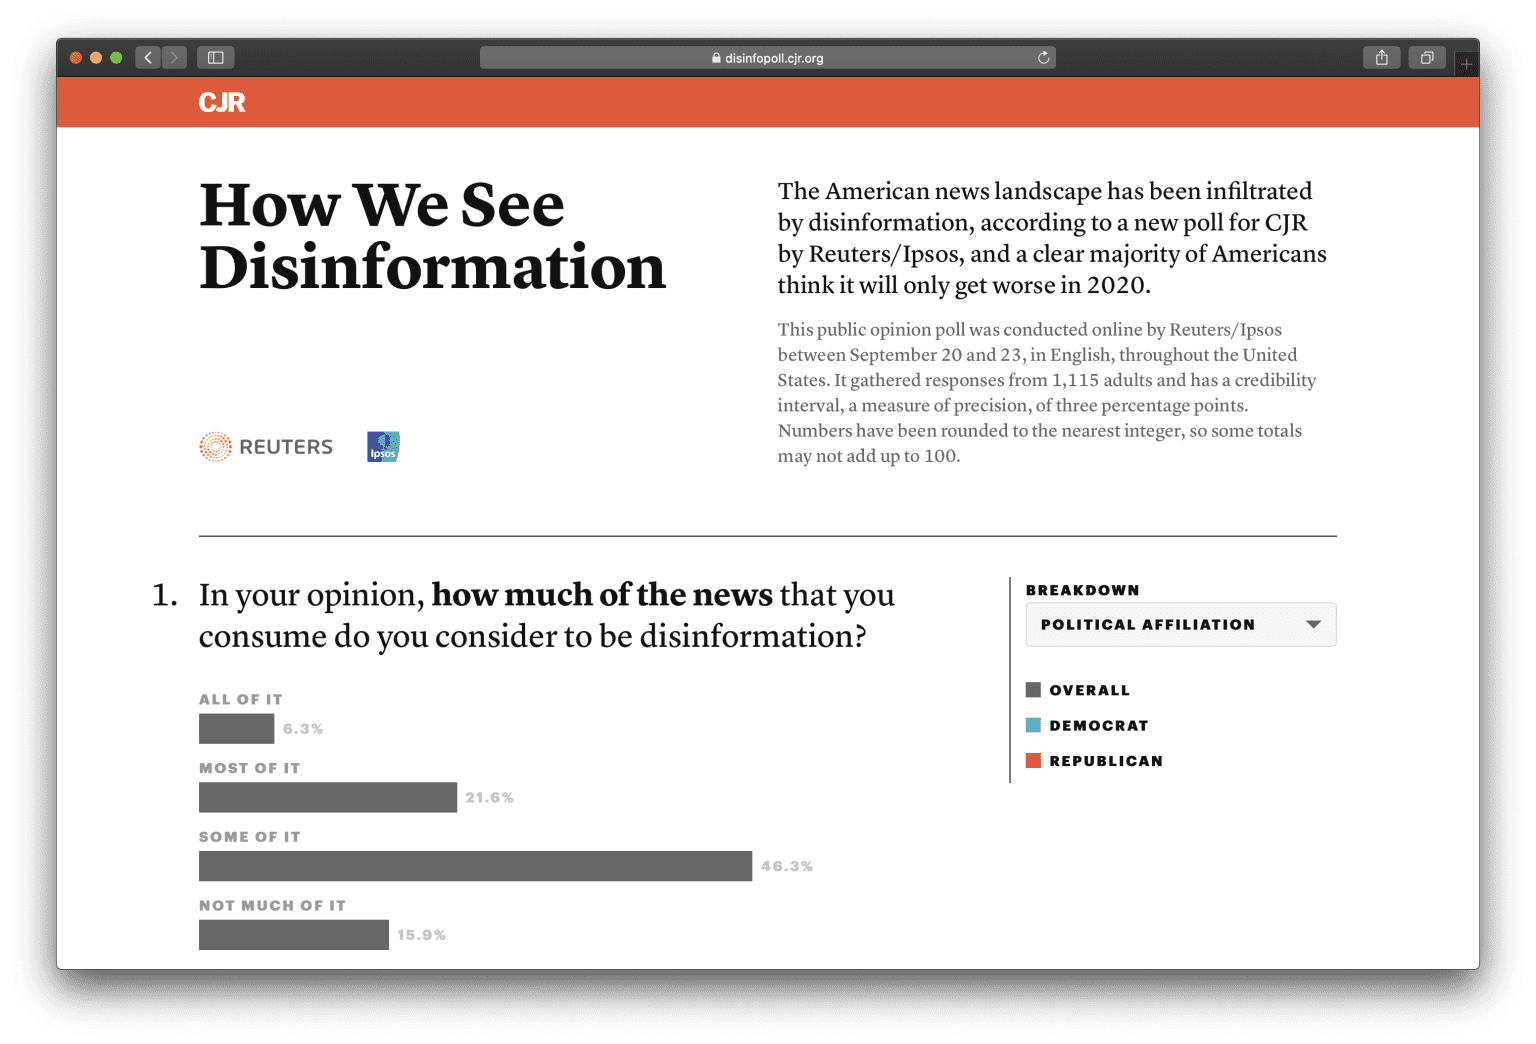 How We See Disinformation